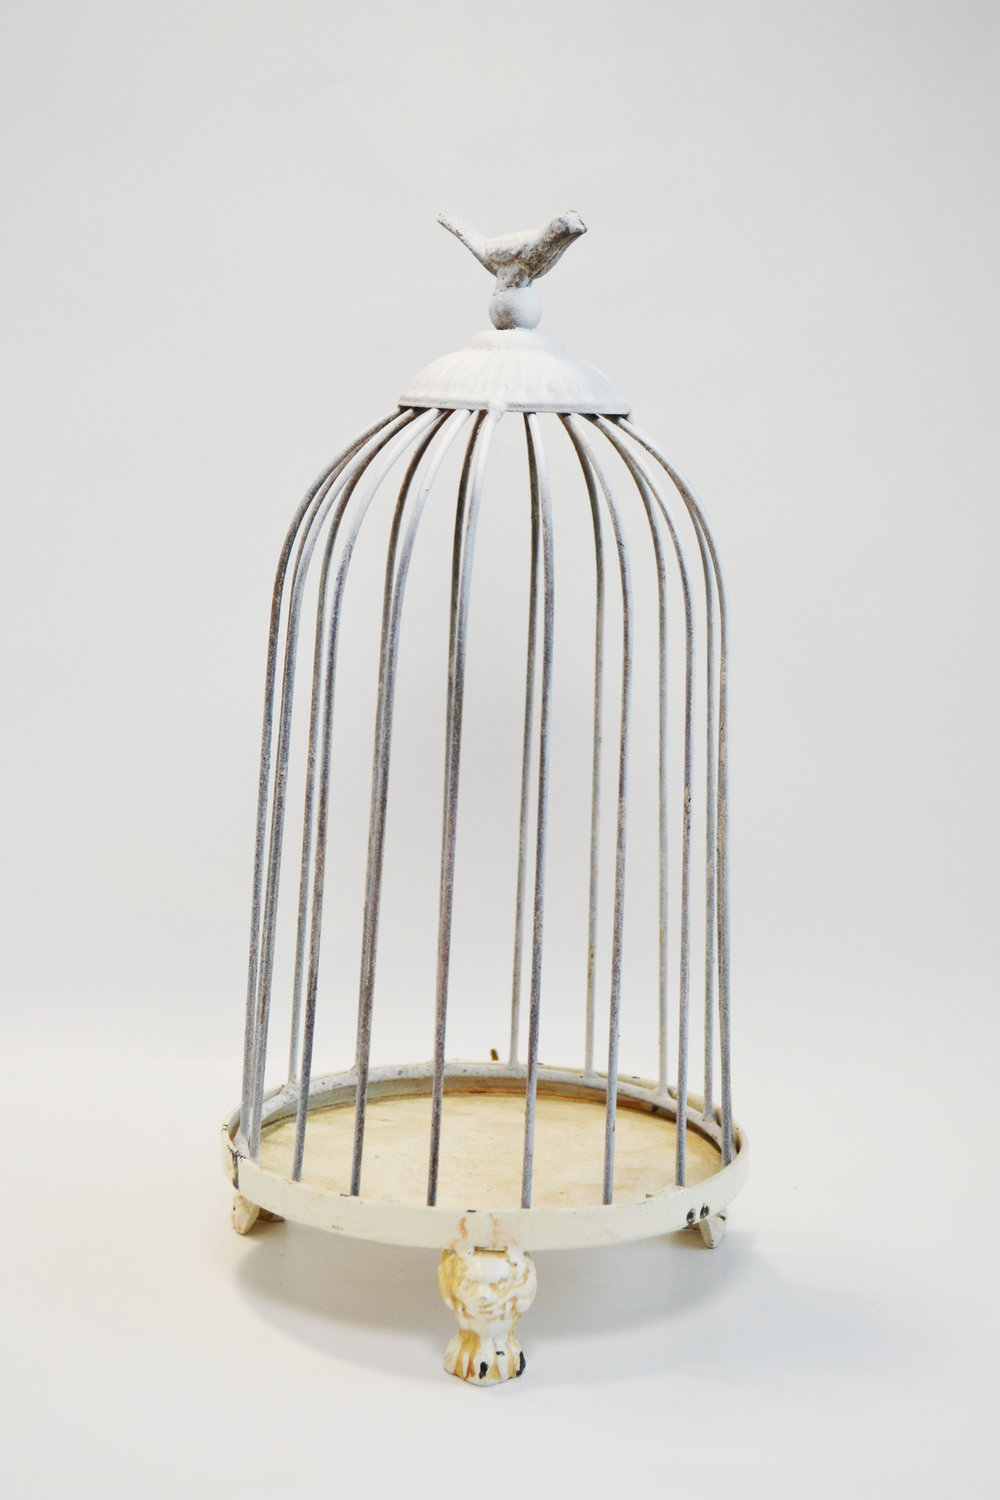 xl bird cage prop   Quantity: 3  Price: $16.00